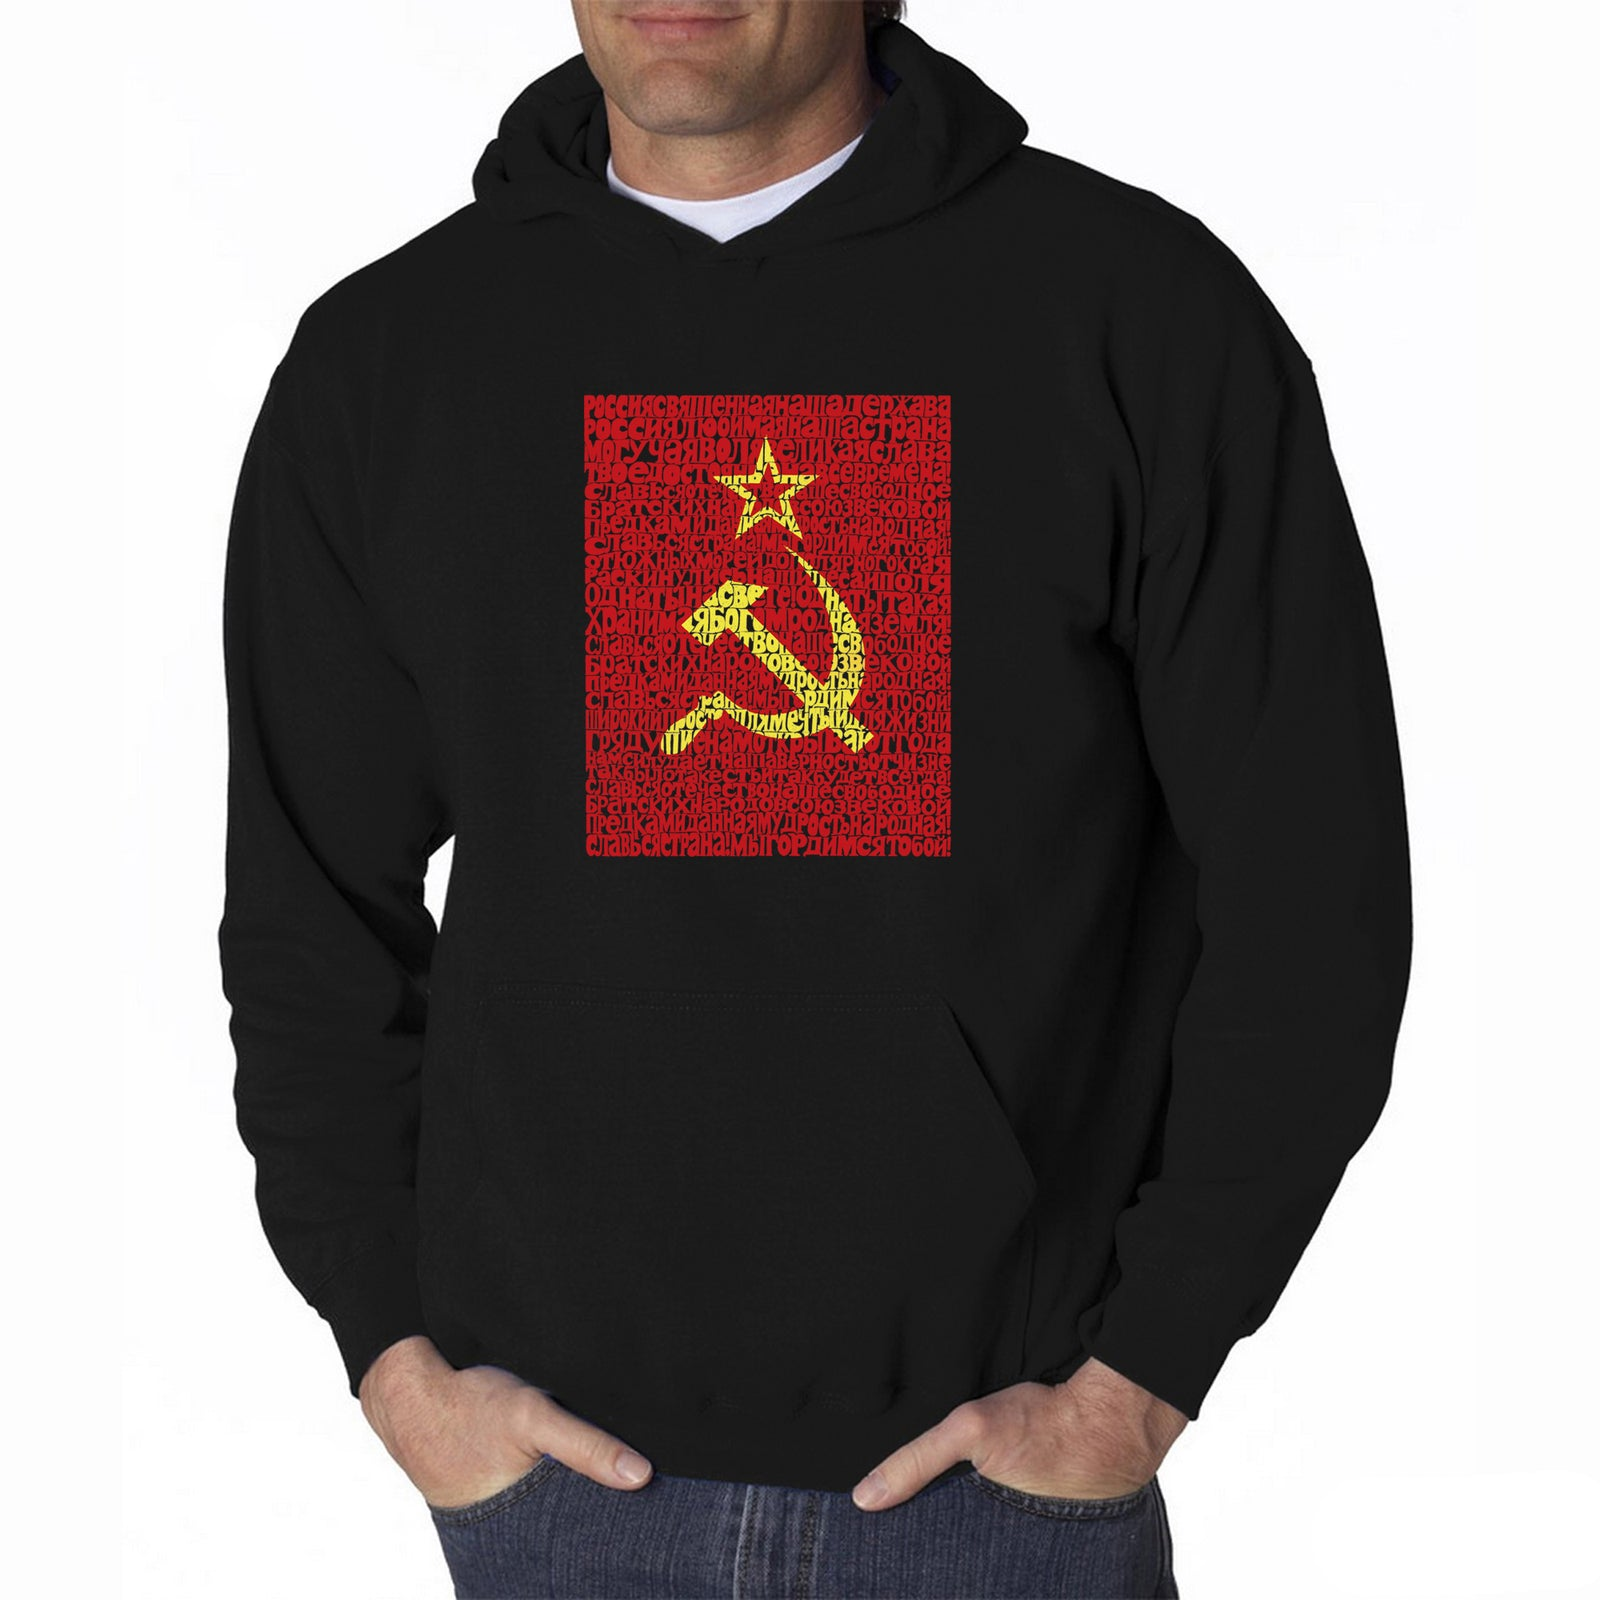 Men's Hooded Sweatshirt - Lyrics to the Soviet National Anthem